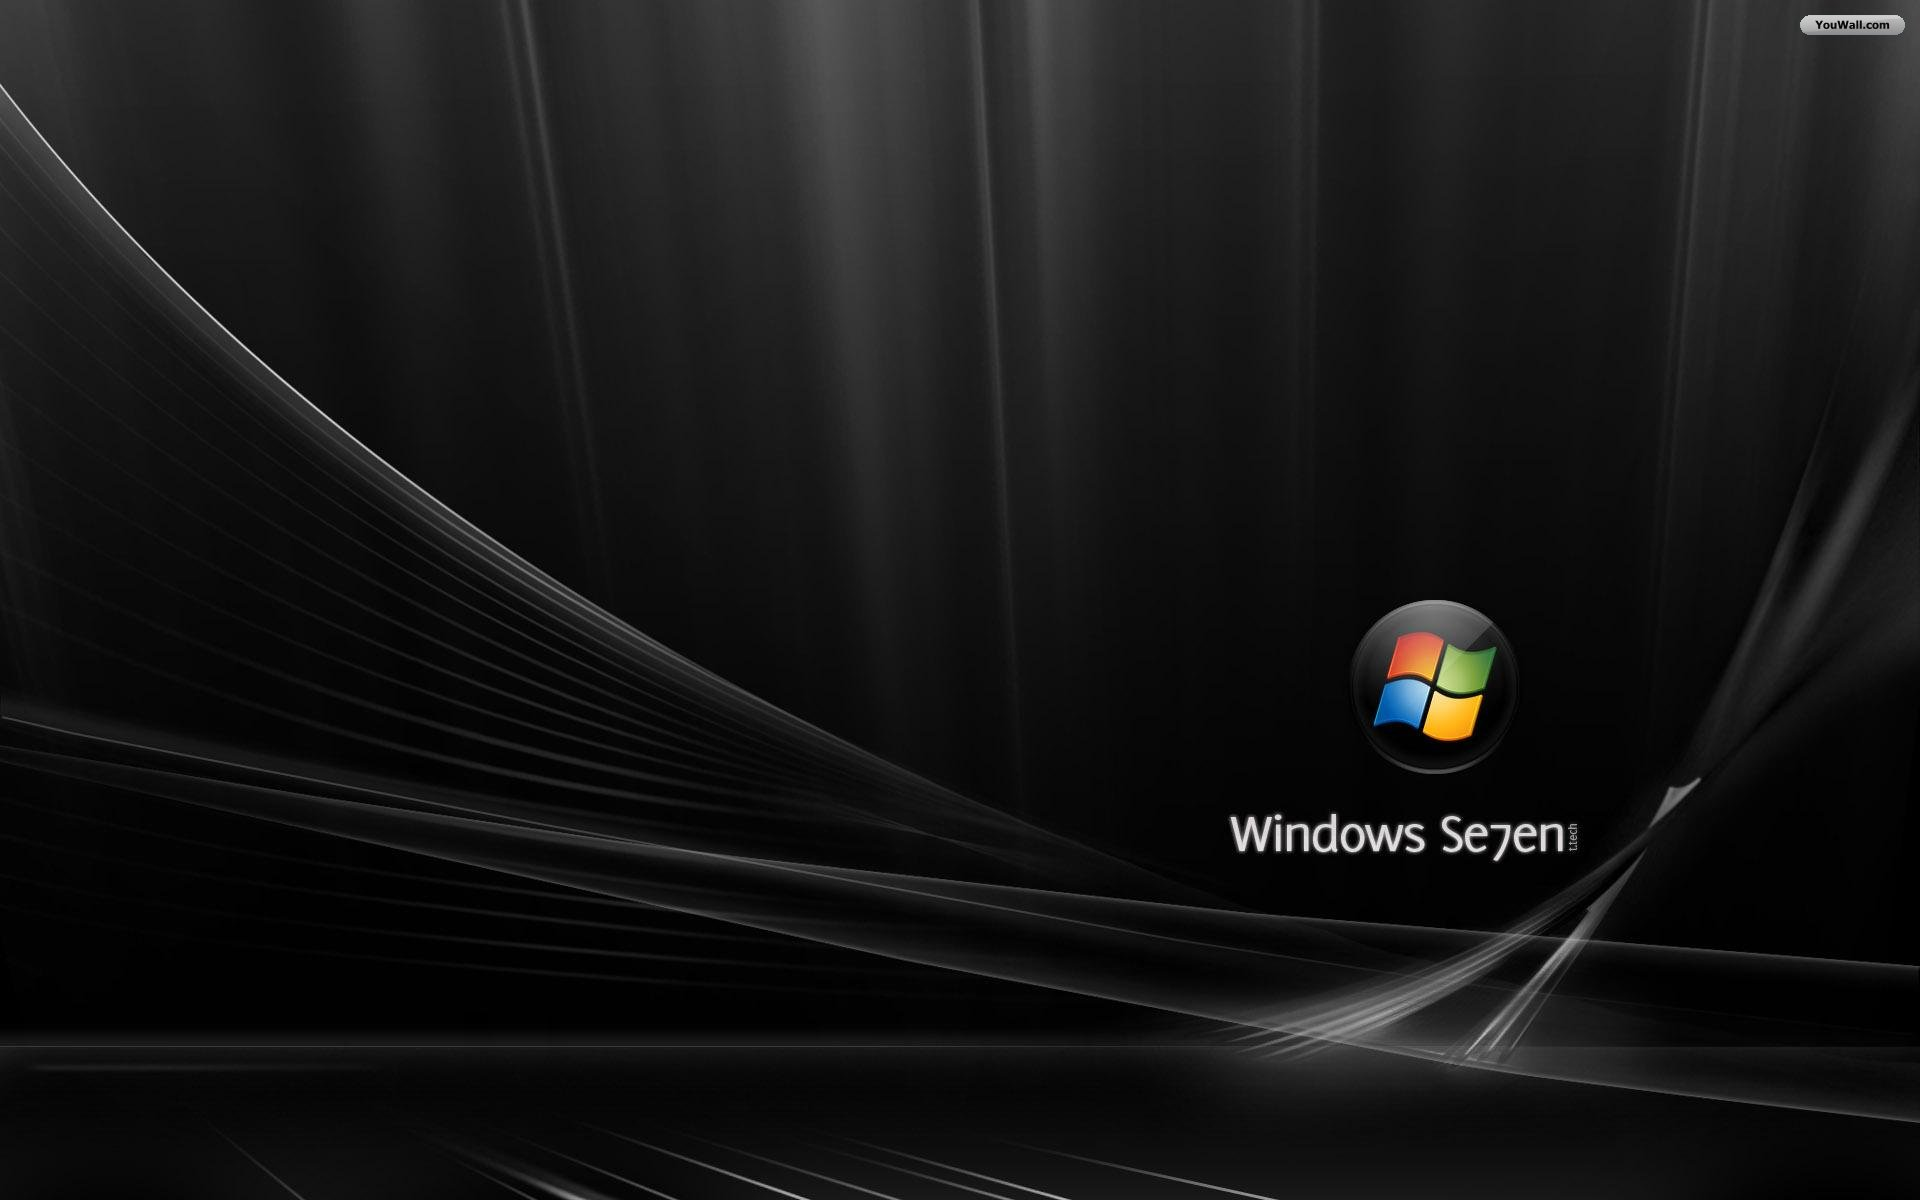 Collection of Free Windows Wallpaper on HDWallpapers